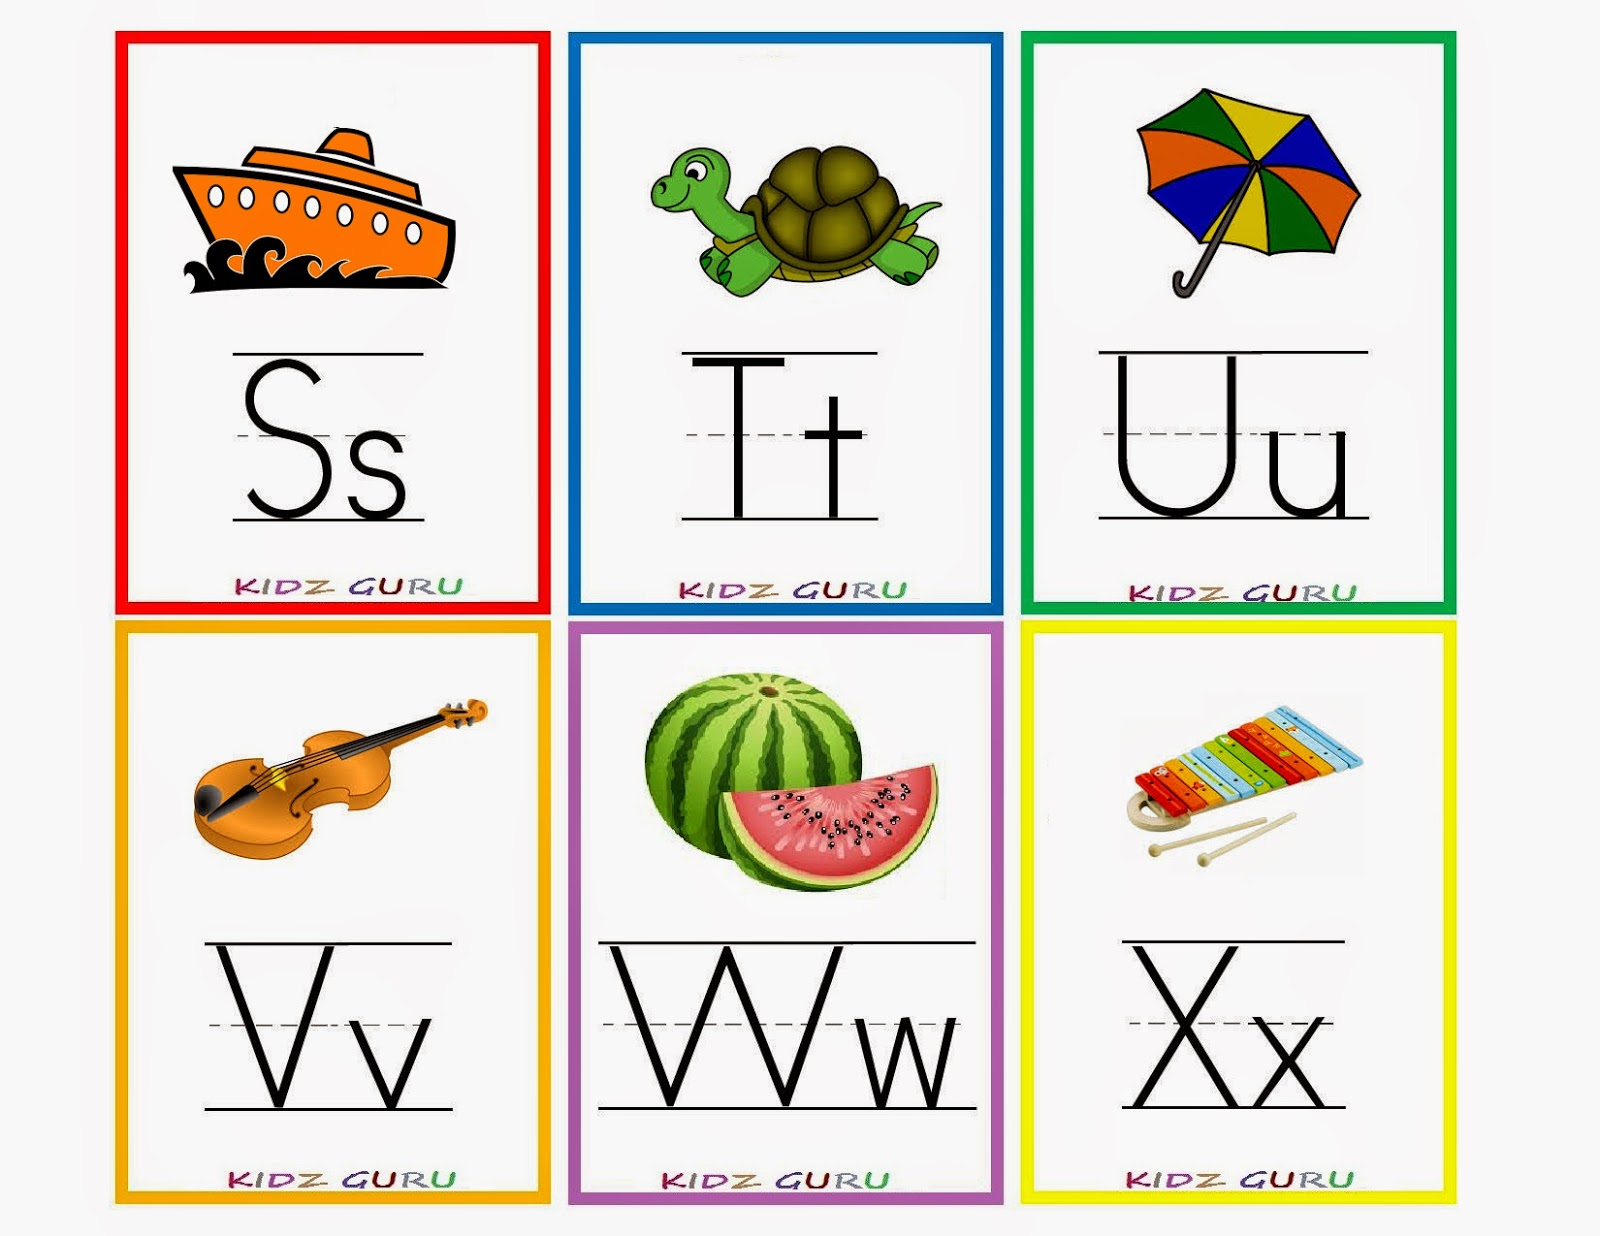 Kindergarten Worksheets: Printable Worksheets - Alphabet flash cards 4